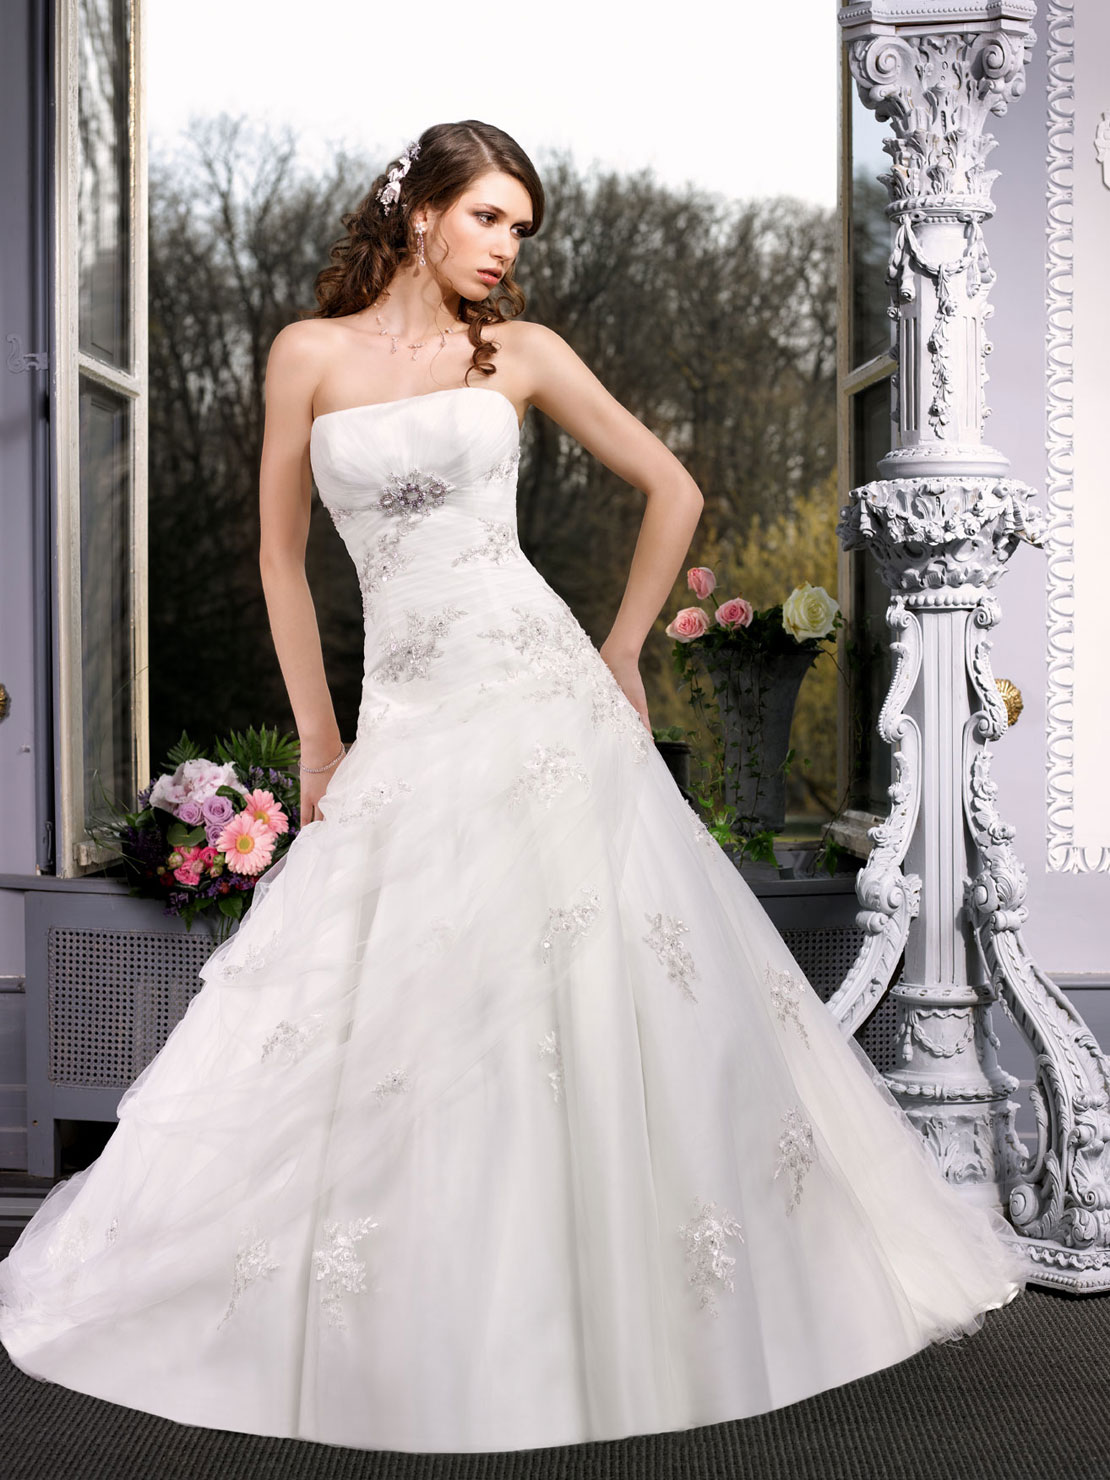 2013 A Bride Tube Top Organza Wedding Dress Outdoor Professional Customize In